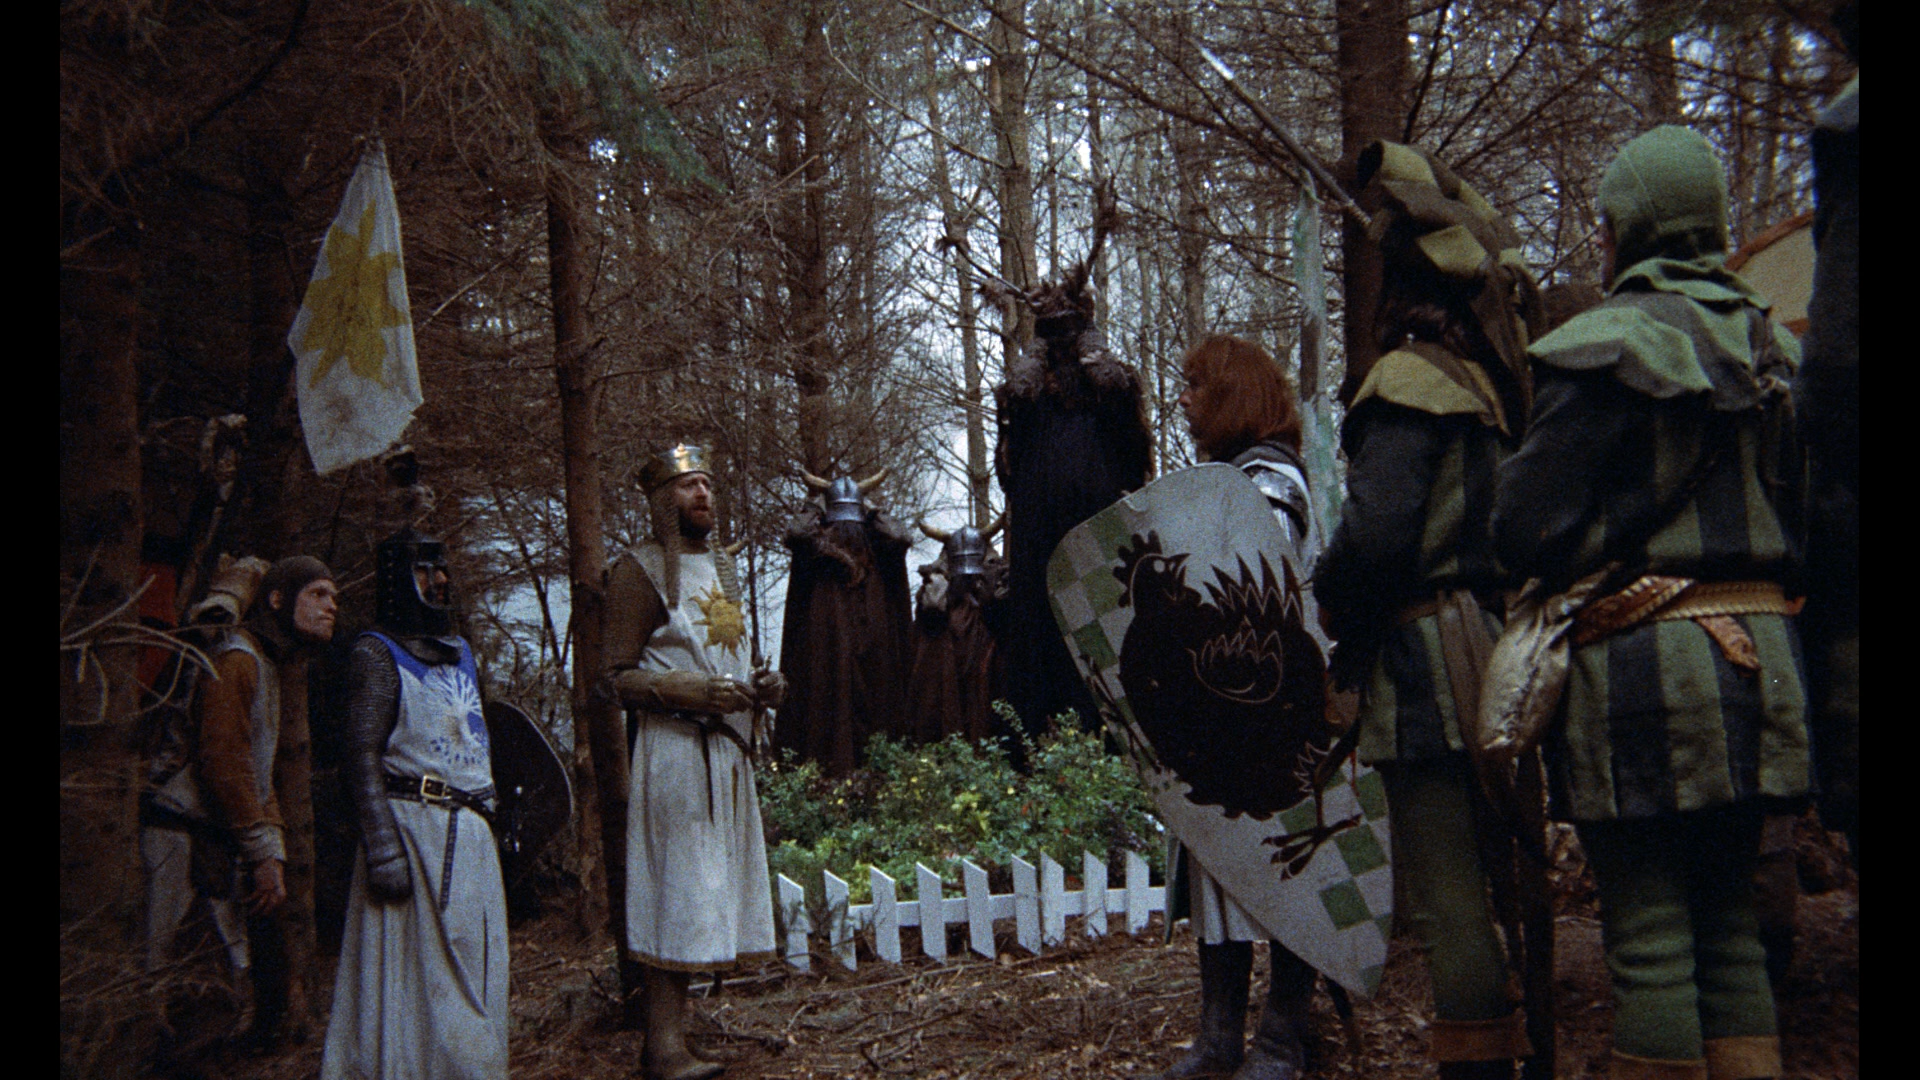 monty python and the holy grail satire essay The 20 best postmodernist movies of all time  monty python and the holy grail (1975) written and performed and directed by the comedy group monty python.